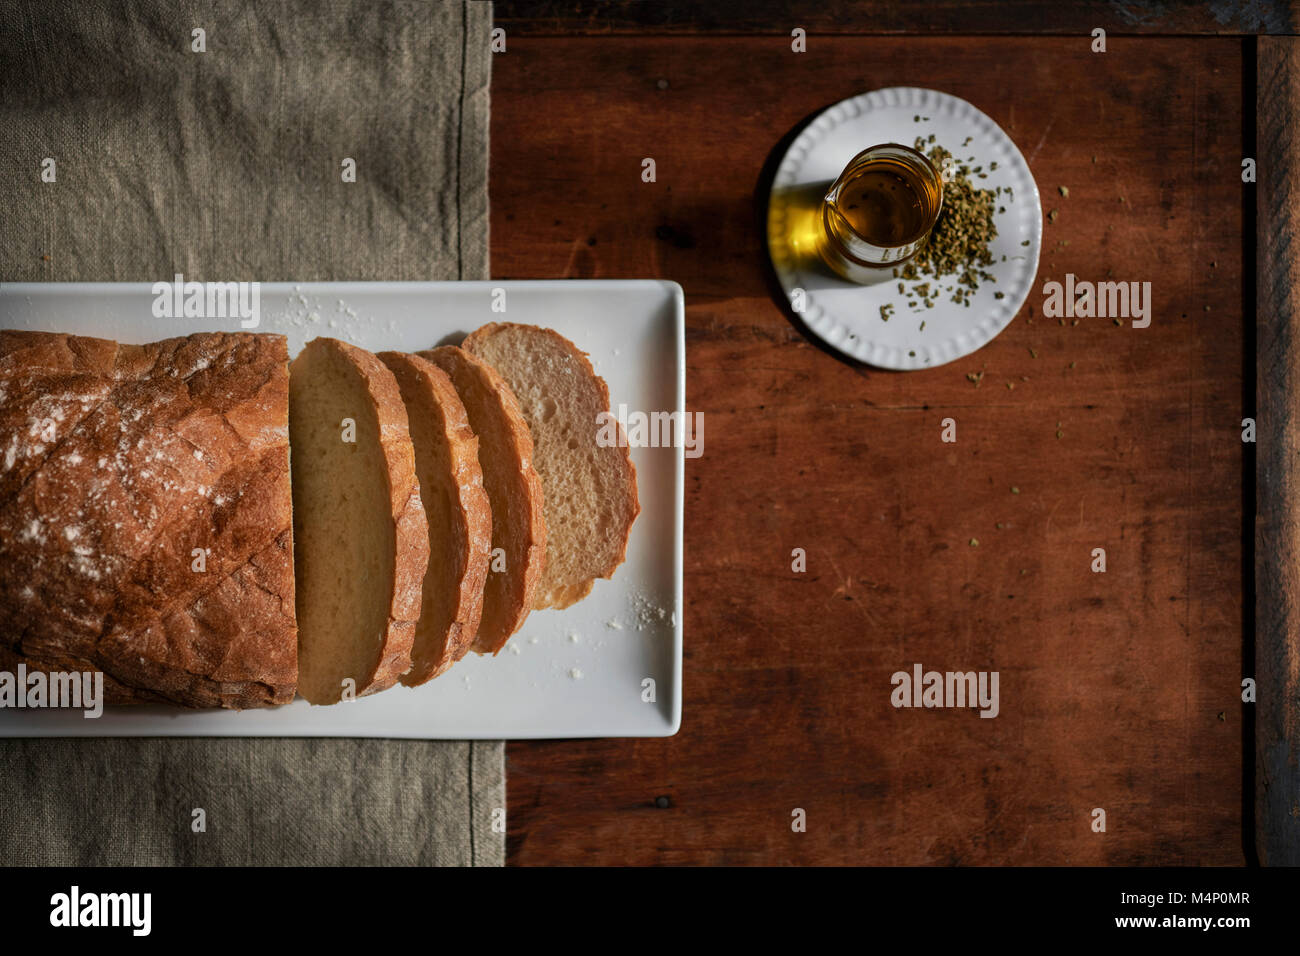 Loaf of rustic, white bread sliced on a white plate with oil and herbs nearby on a rich, wood tabletop with linen. - Stock Image